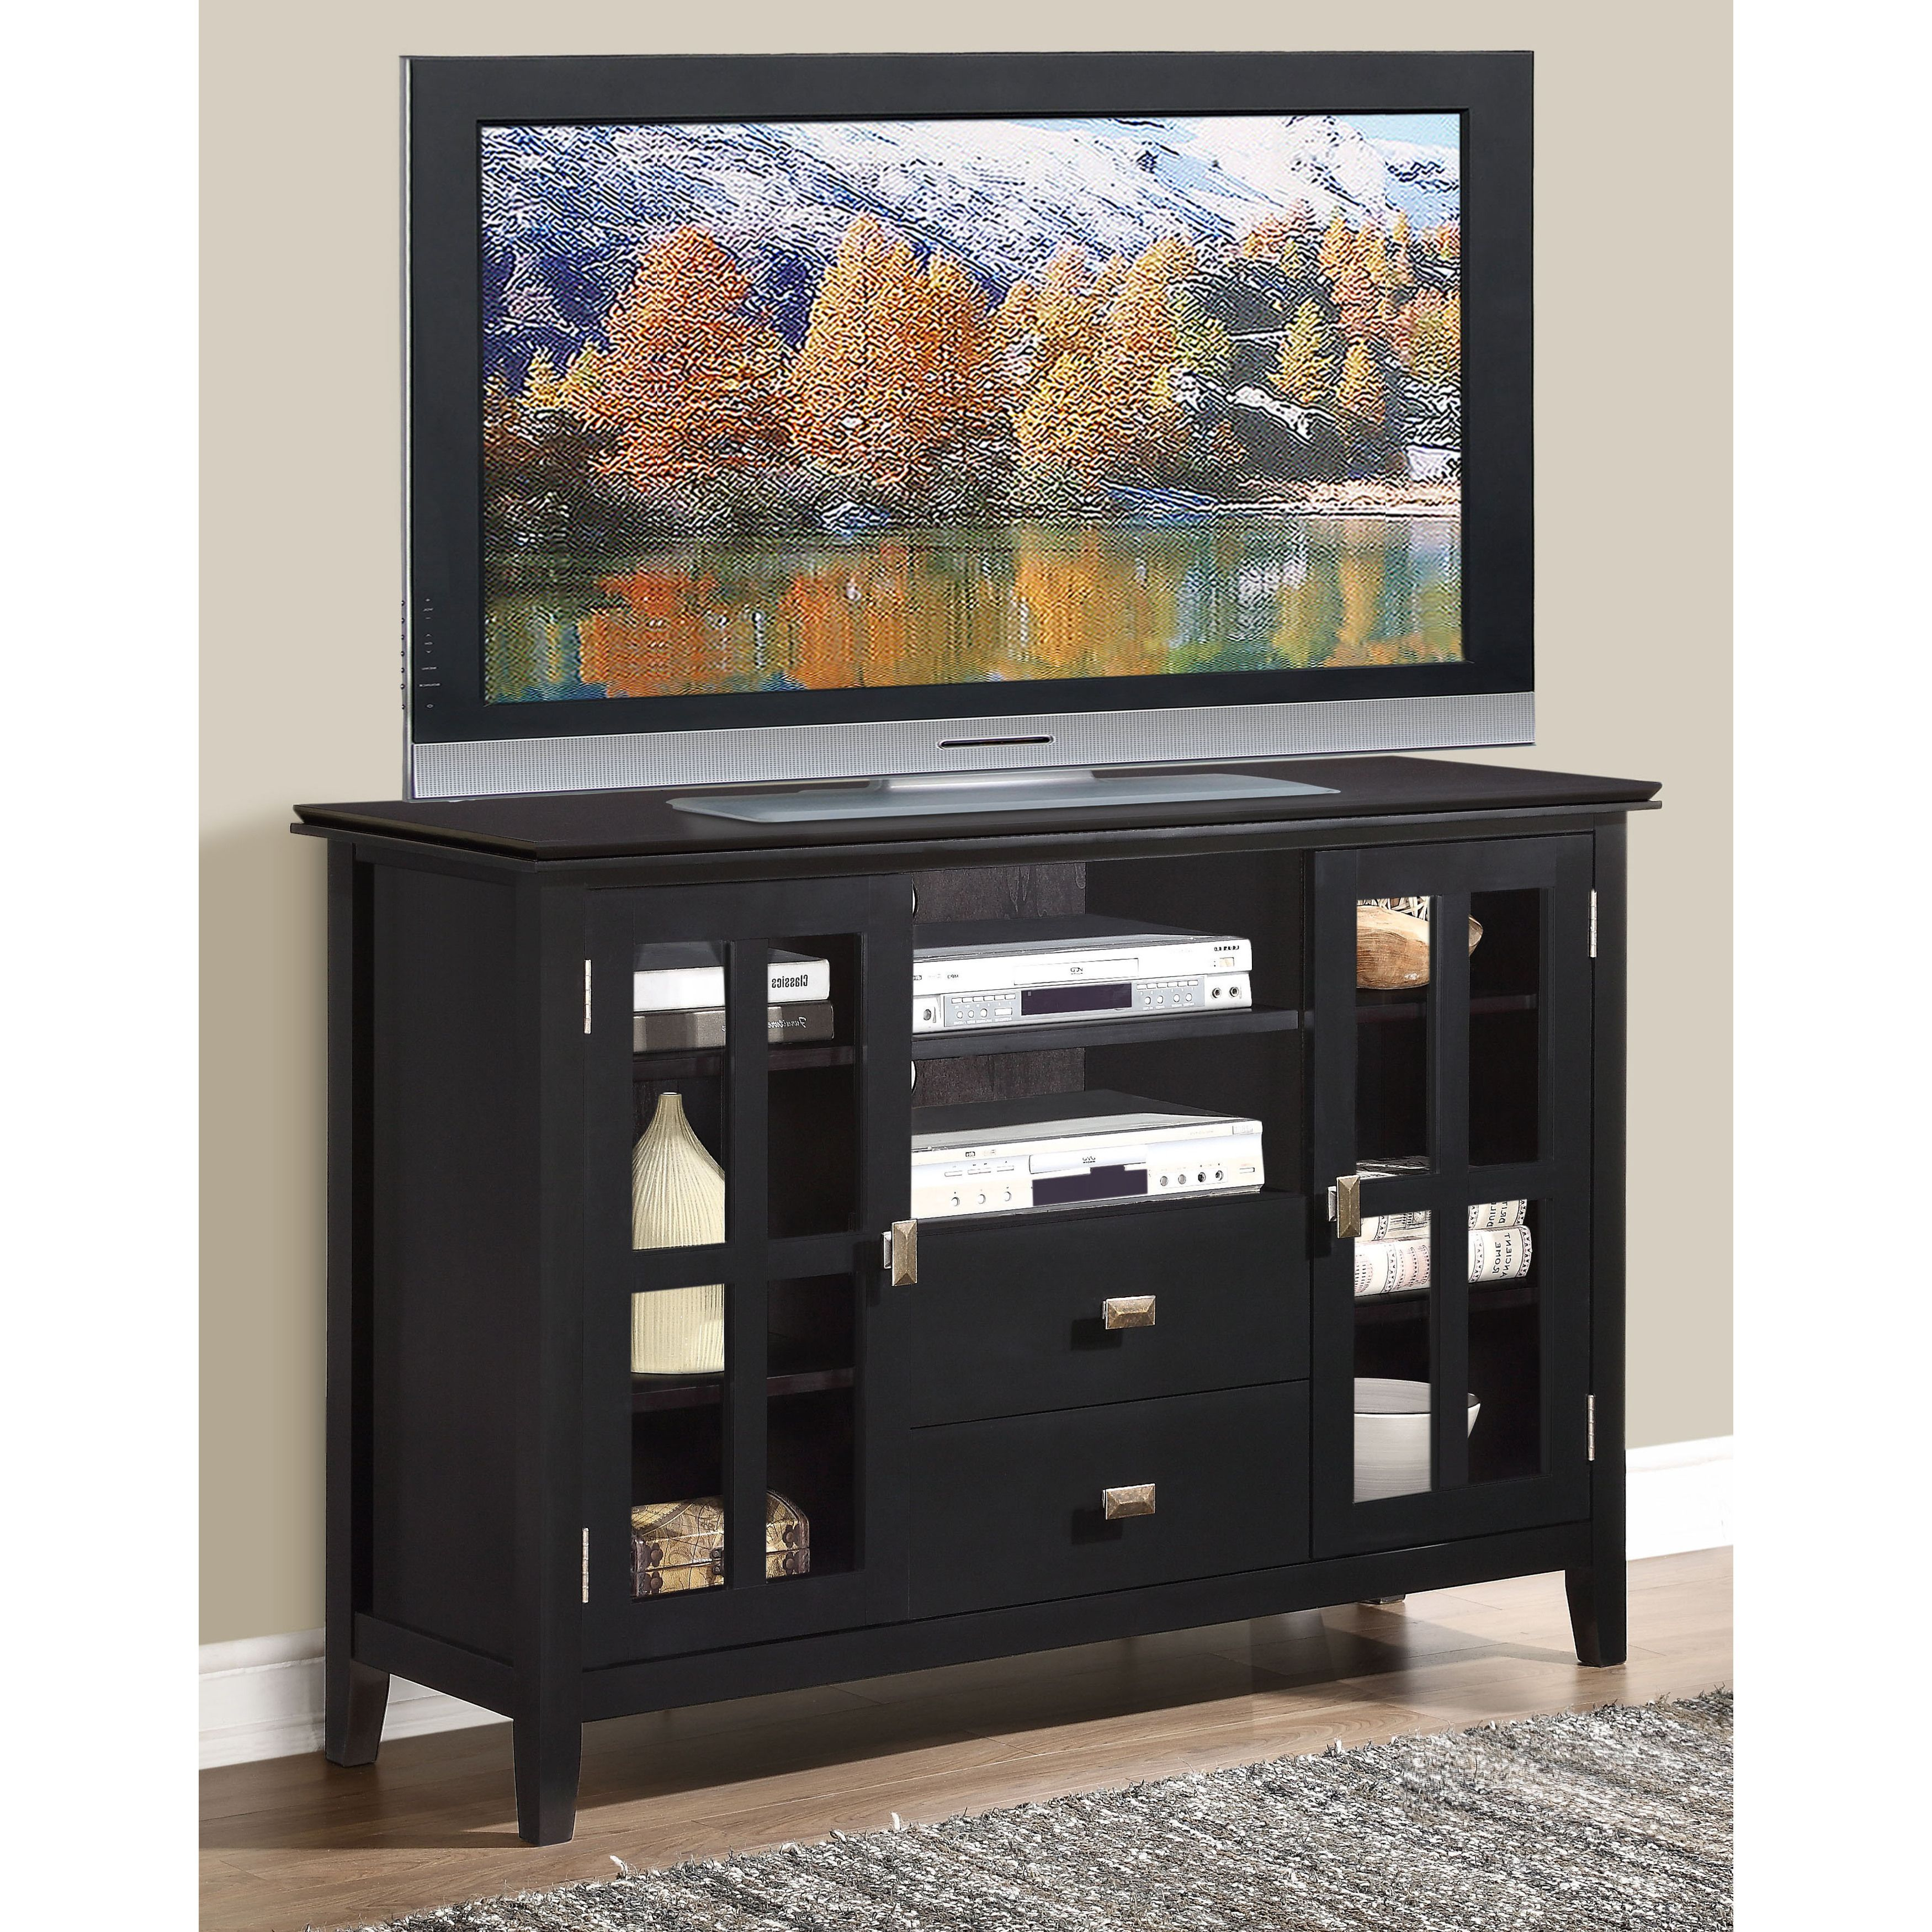 Overstock Com Online Shopping Bedding Furniture Electronics Jewelry Clothing More Home Entertainment Centers Tv Stand Tall Tv Stands 35 inch tall tv stand